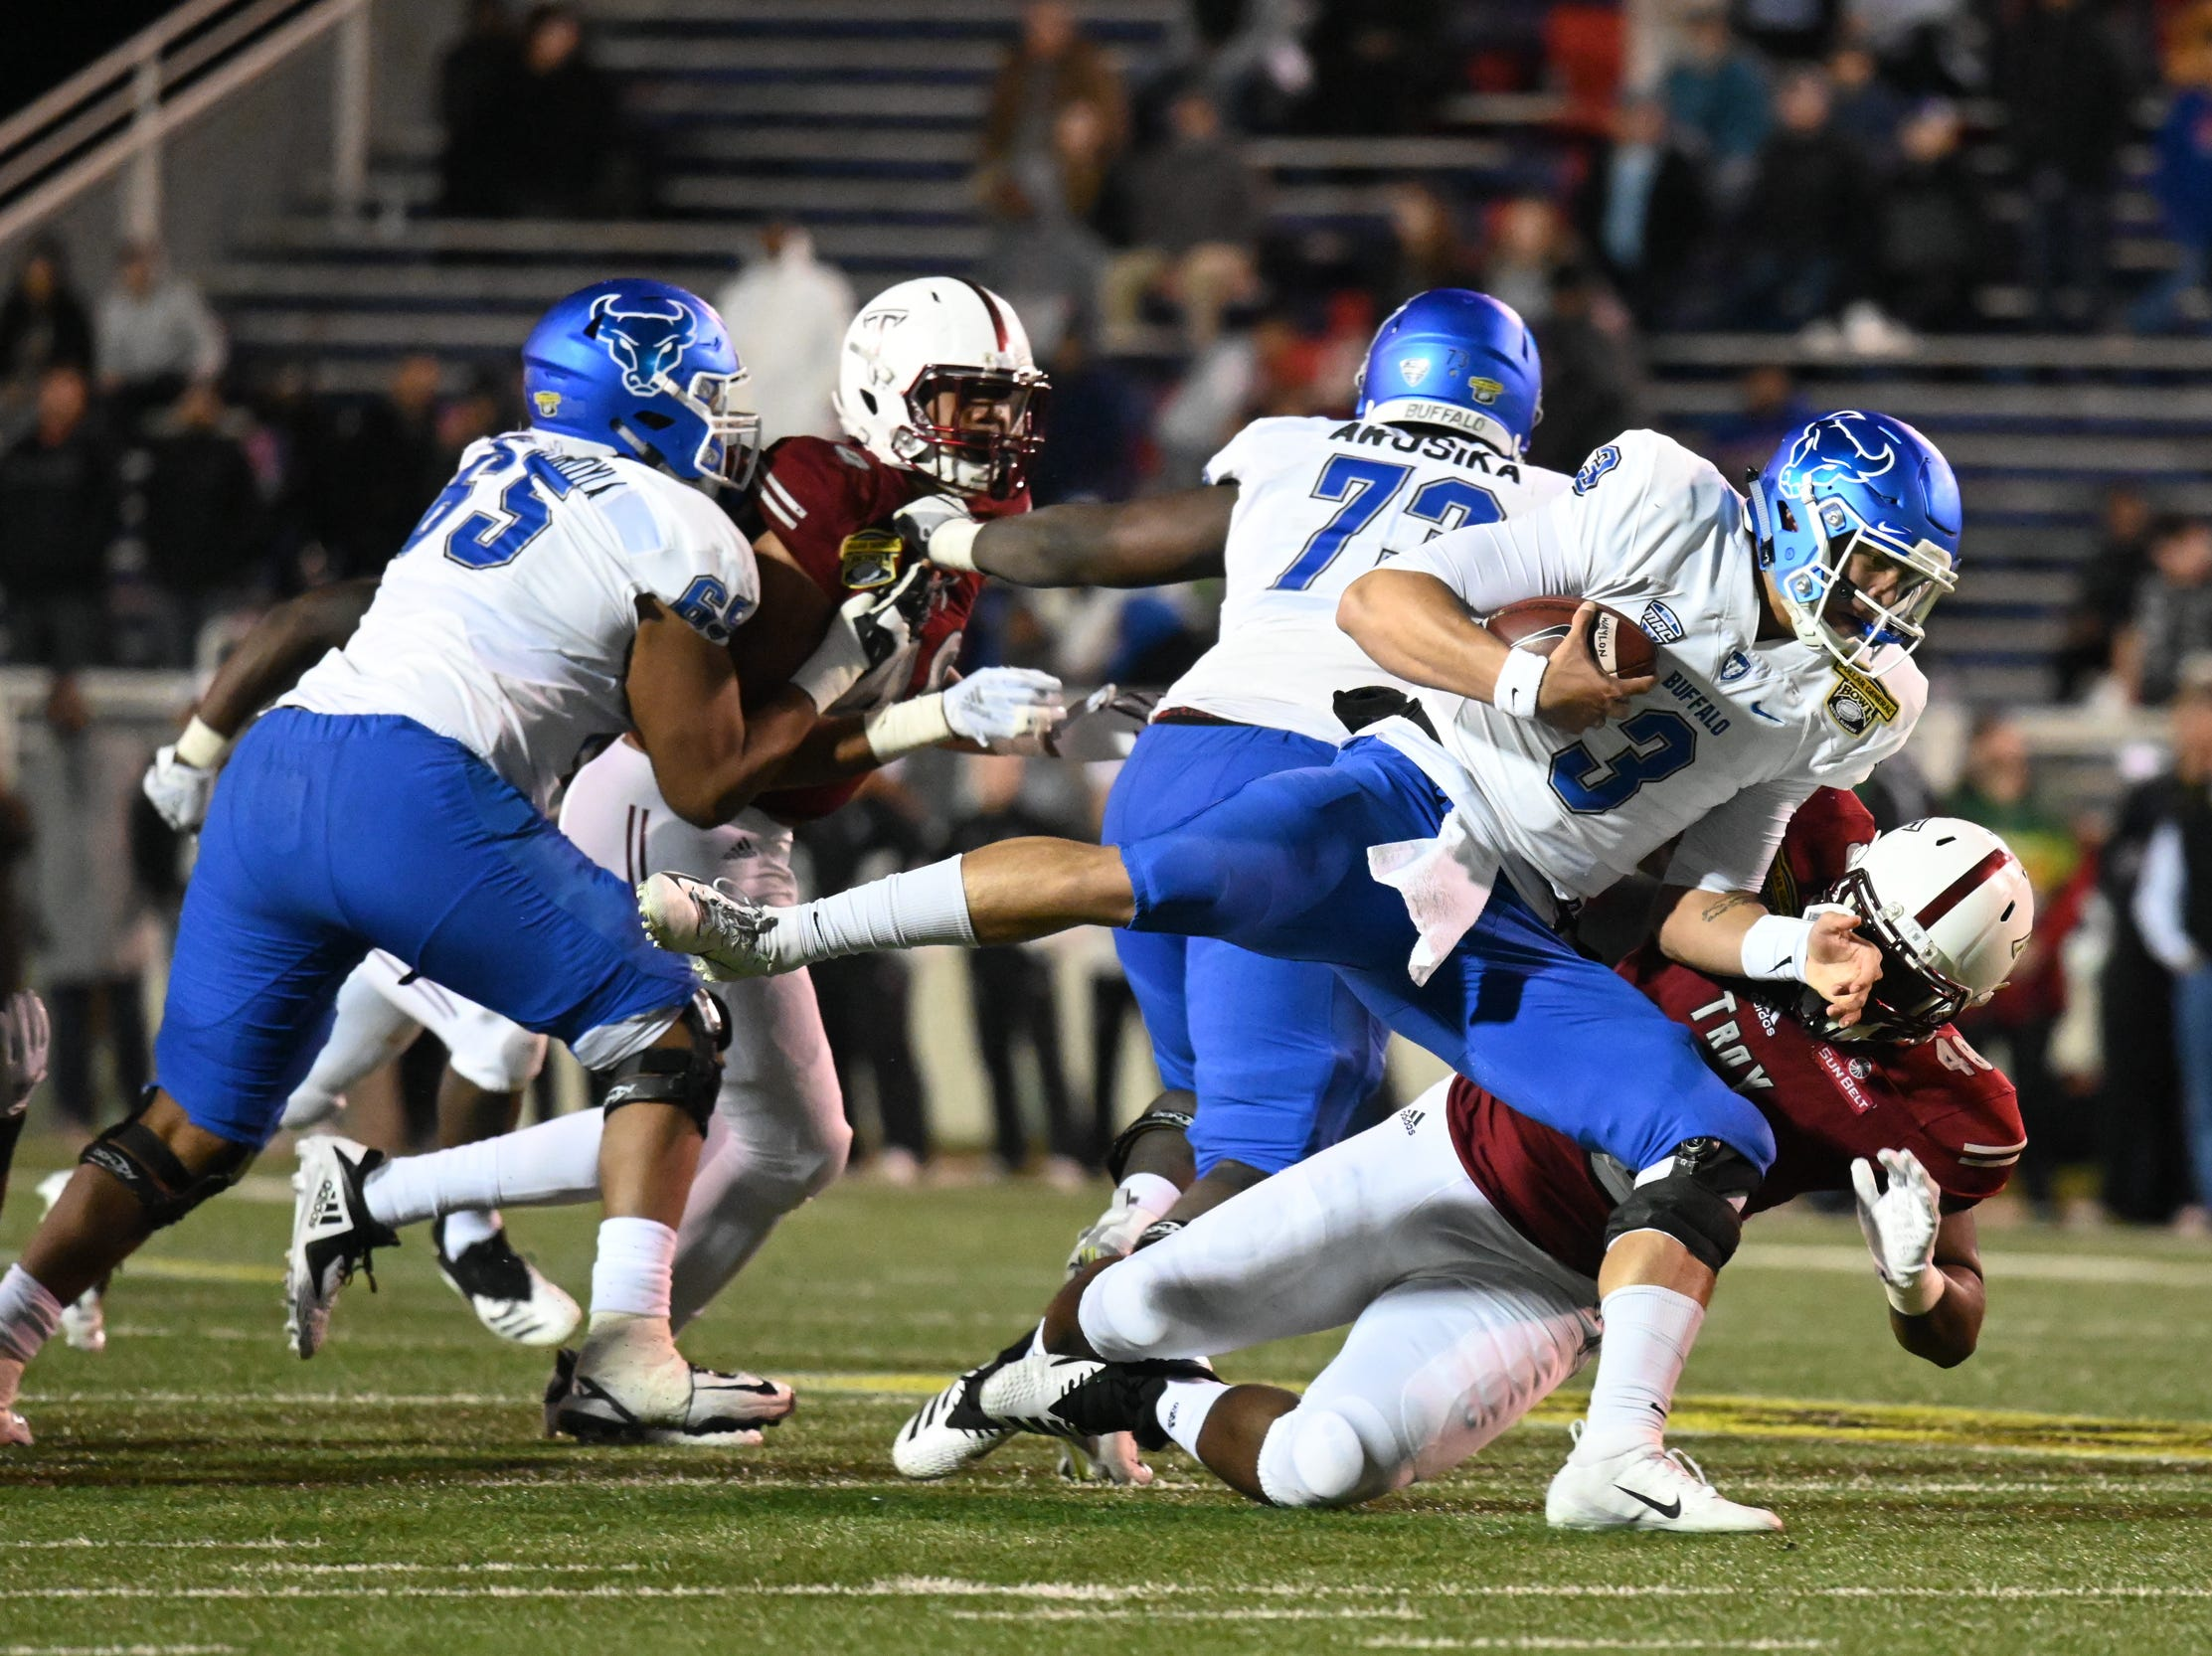 Buffalo Bulls quarterback Tyree Jackson (3) is sacked by Troy defensive tackle Antione Barker (40) during the second half of the Dollar General Bowl held at Ladd-Peebles Stadium in Mobile on Saturday, Dec. 22, 2018.